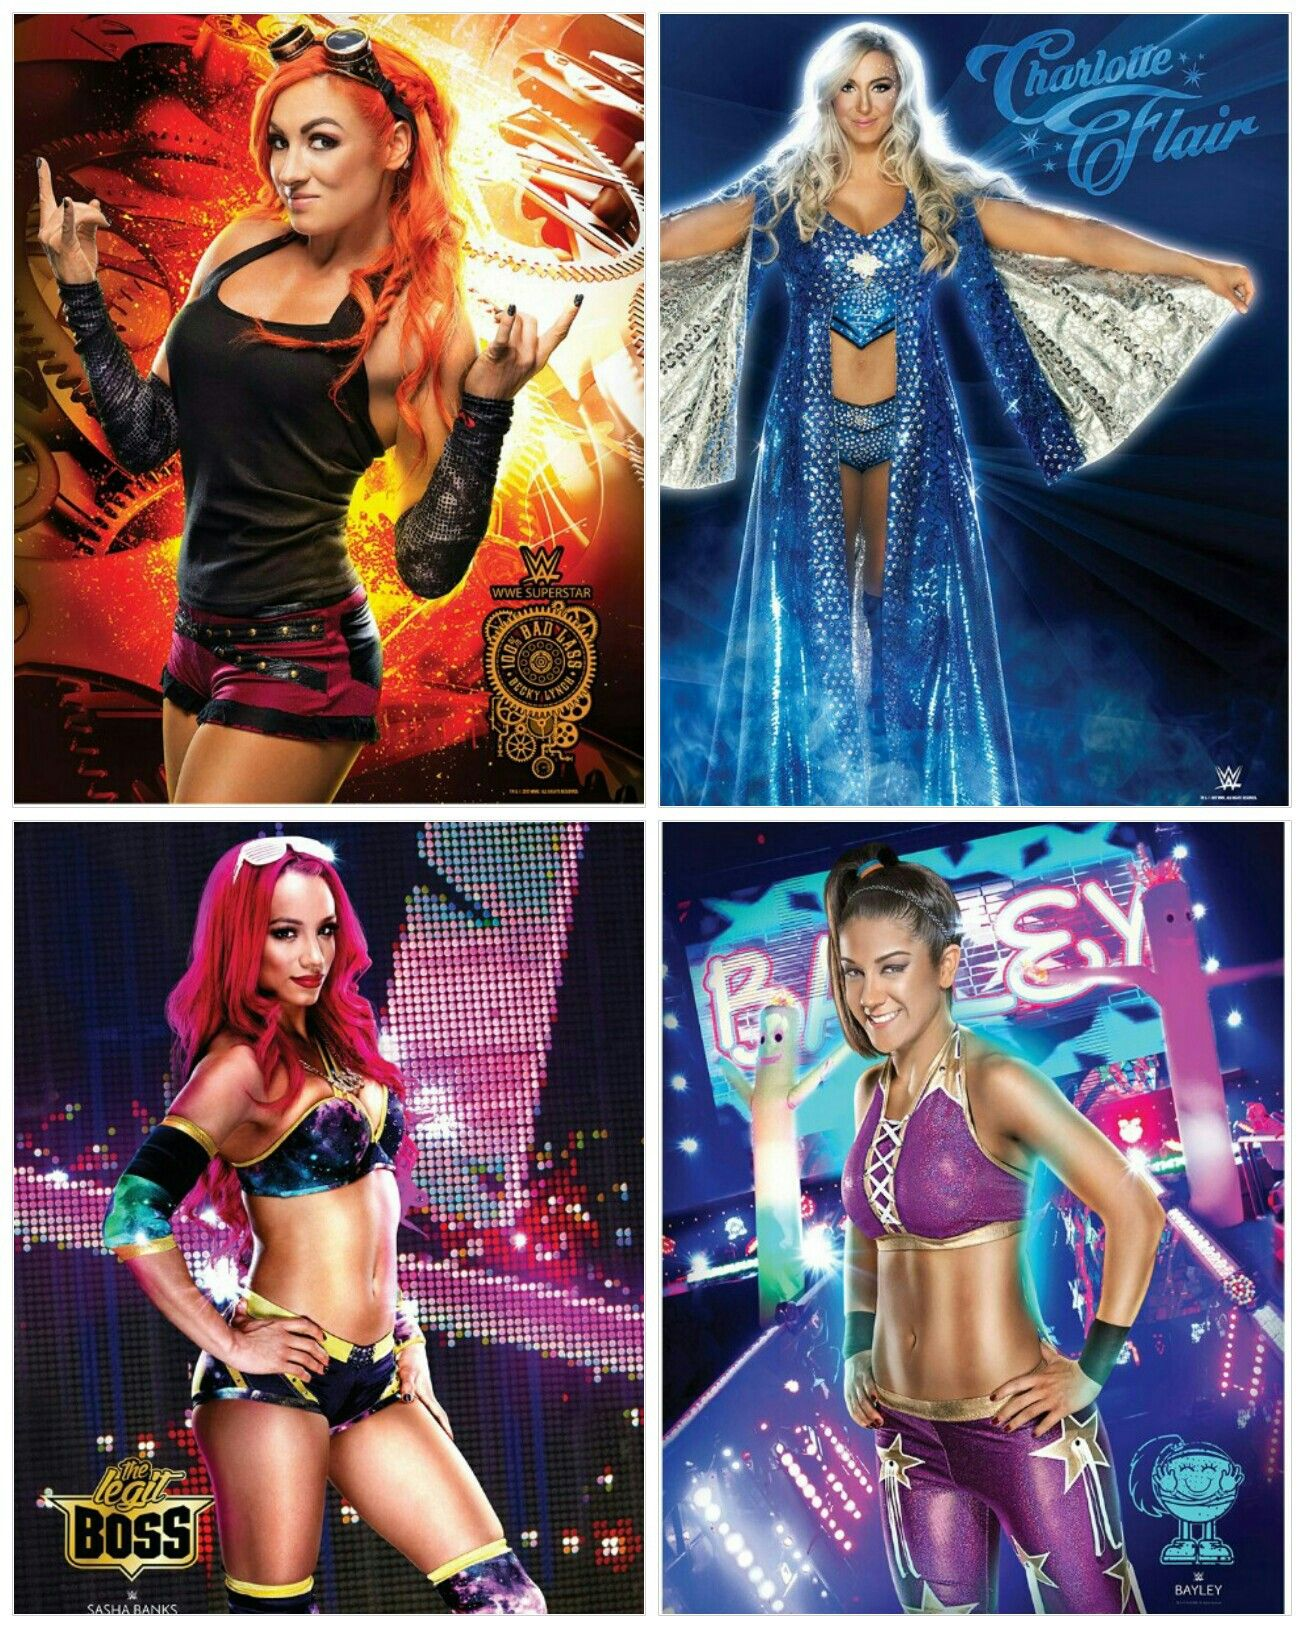 Collage Poster Sasha Banks WWE